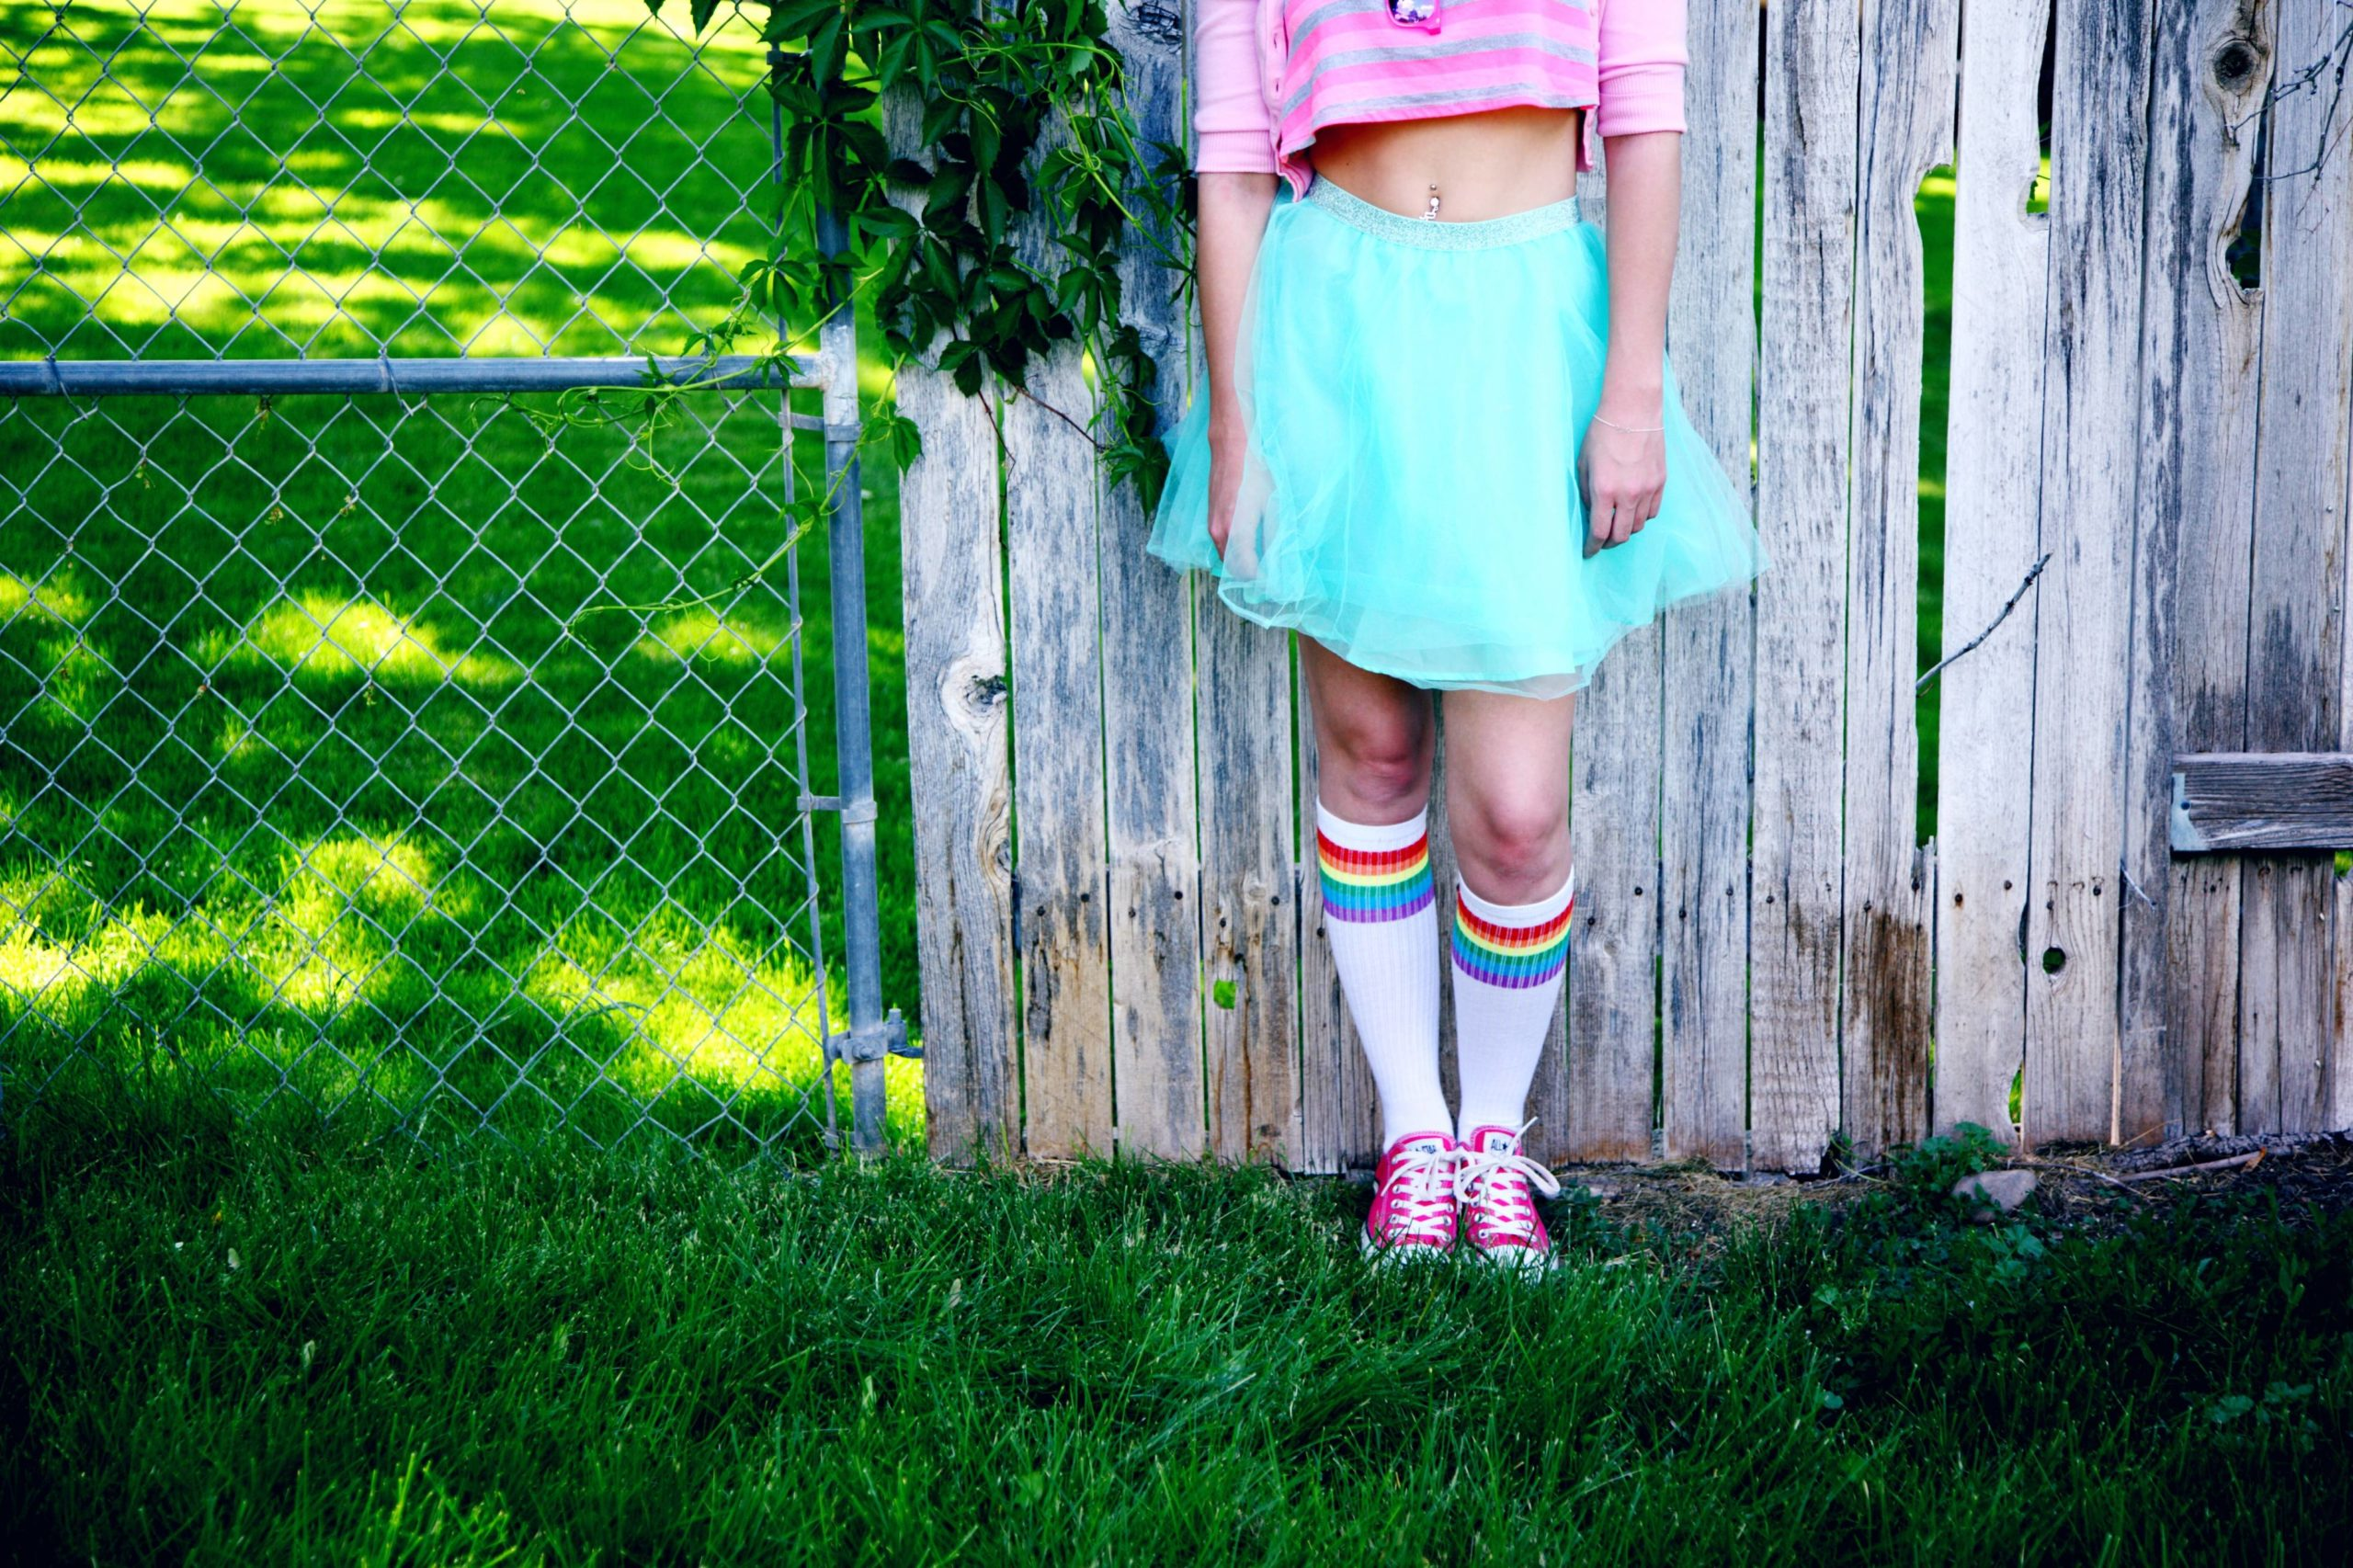 A feminine person stands in front of a wooden fence with a blue skirt, pink crop top and rainbow tube socks